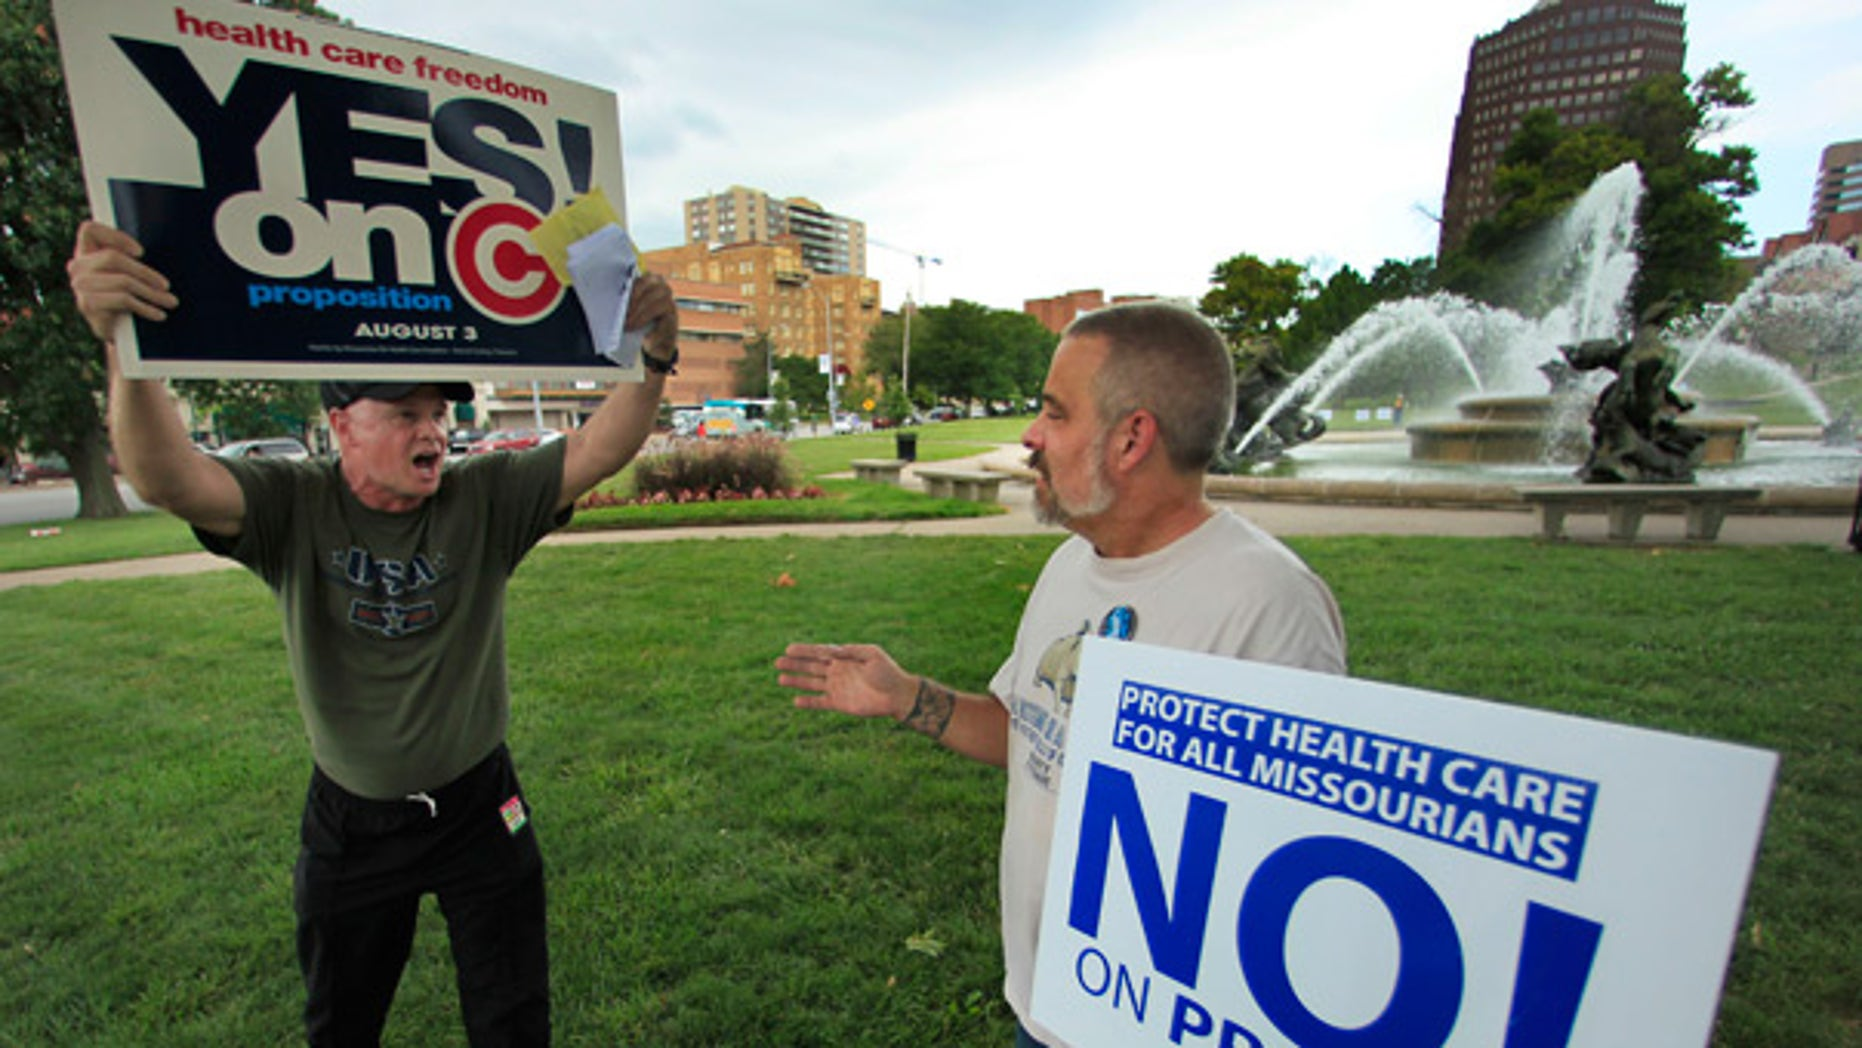 July 29: Proposition C supporter and opponent debate during a rally in Kansas City, Mo.